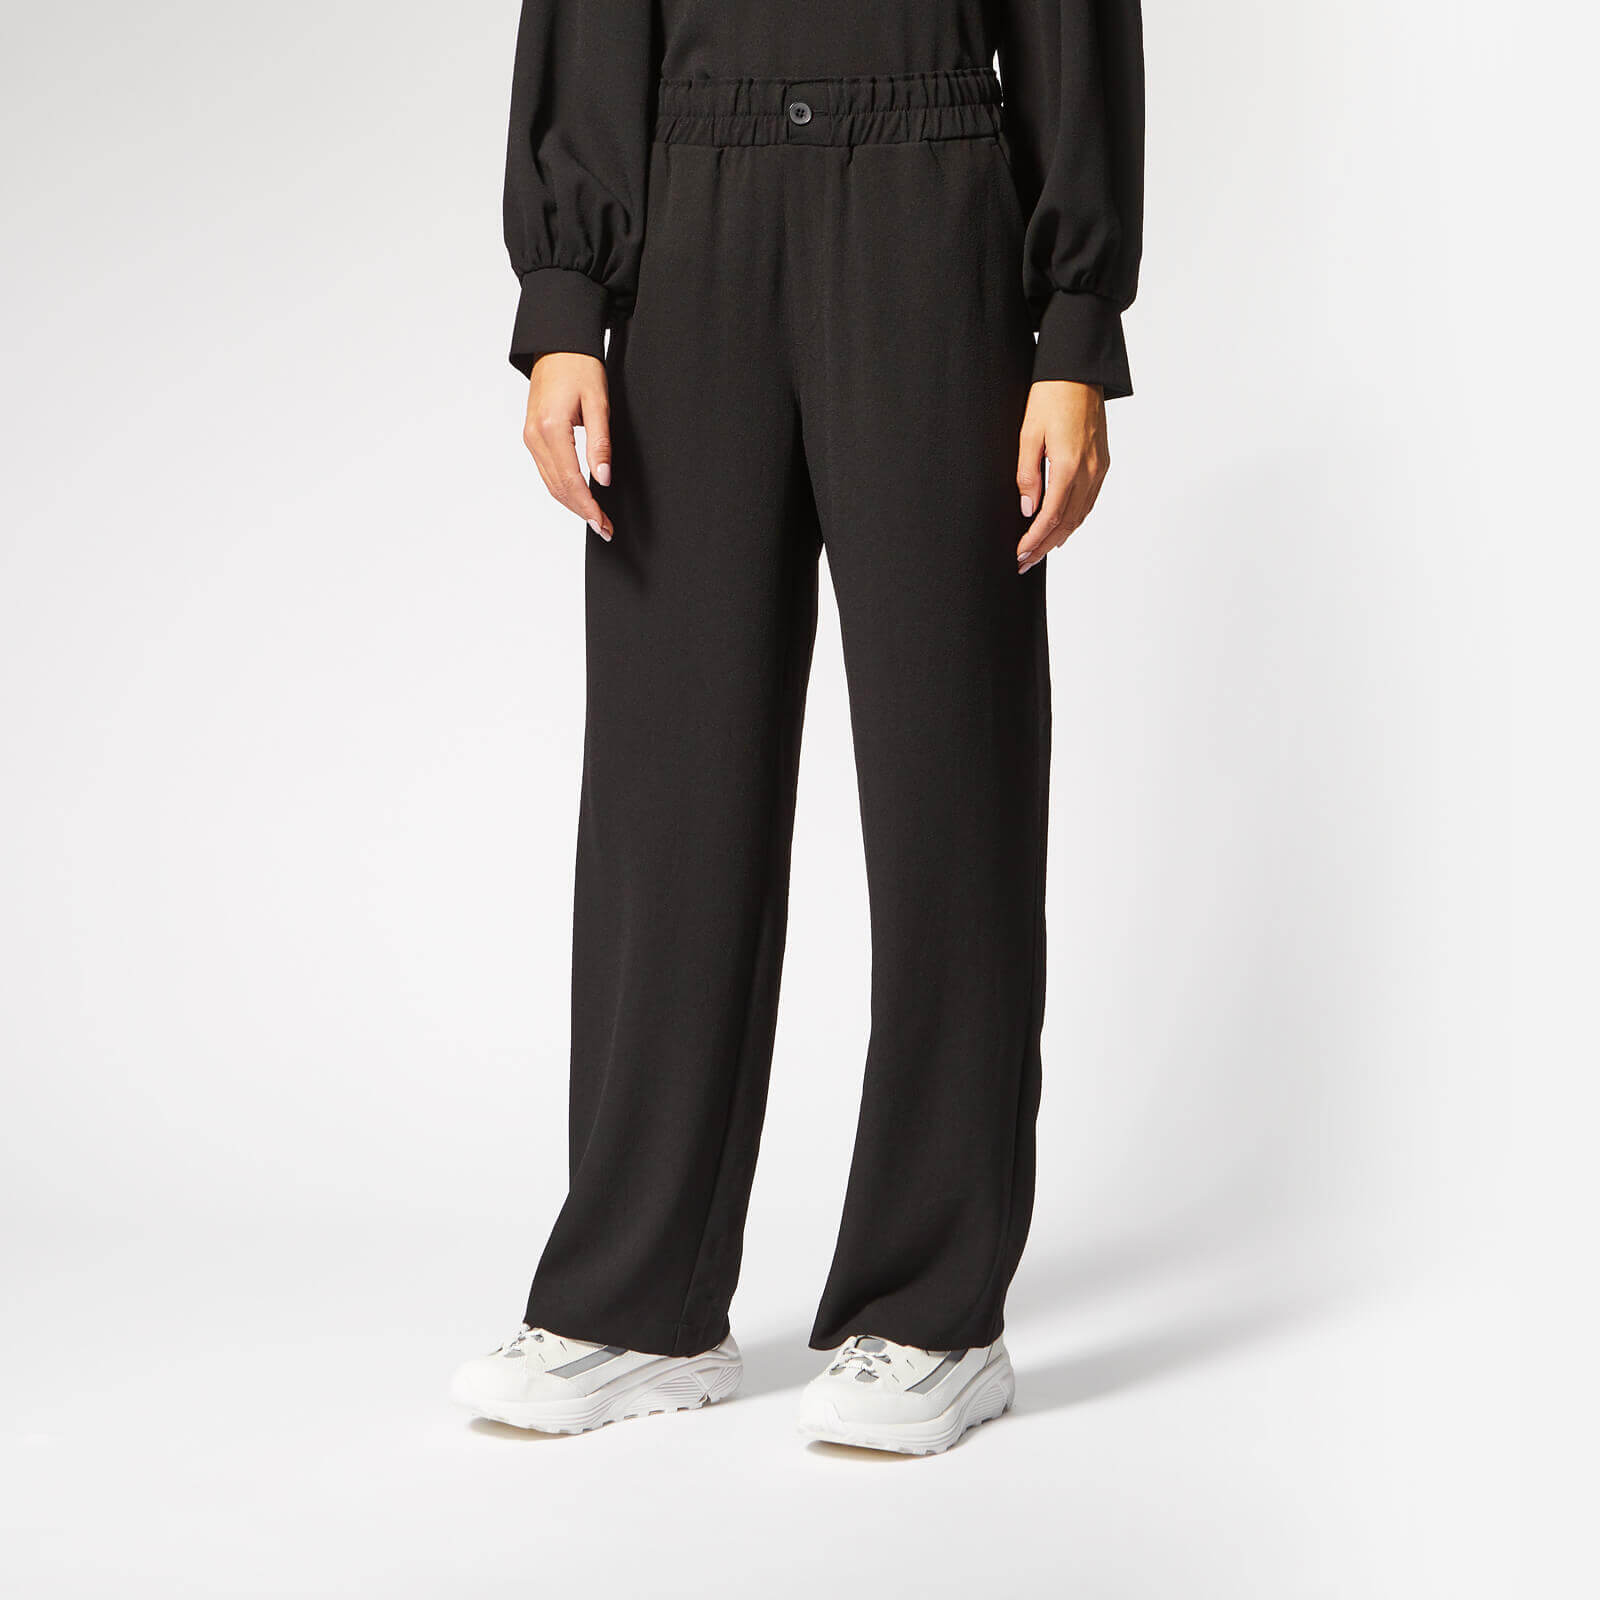 4558e5ba61c7 Ganni Women s Clark Trousers - Black Ganni Women s Clark Trousers - Black